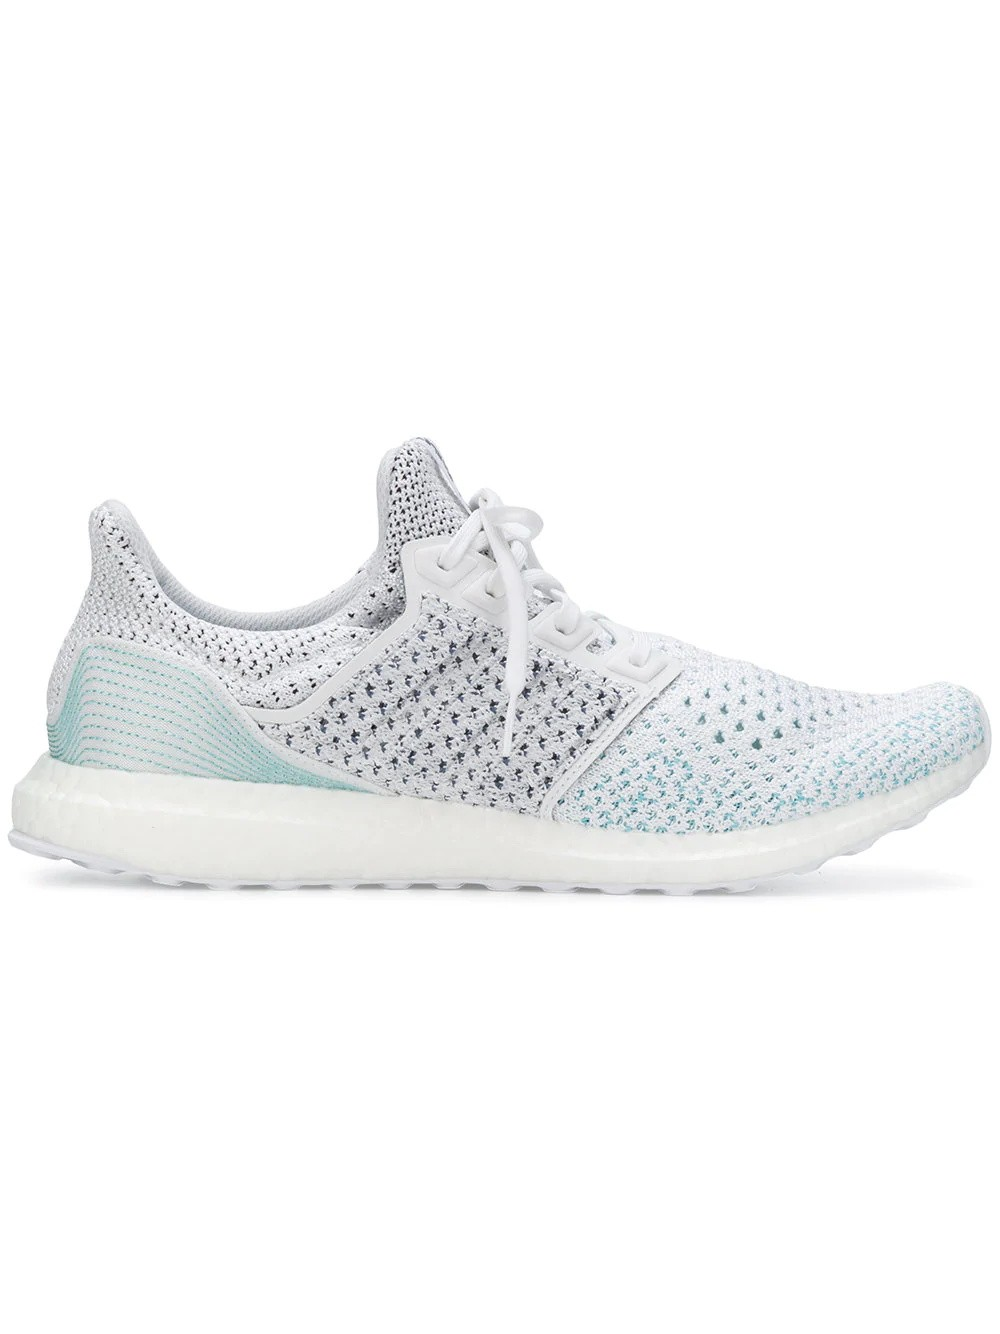 Adidas Ultraboost Parley Ltd 4.0 Blanche Blue Spirit BB7076